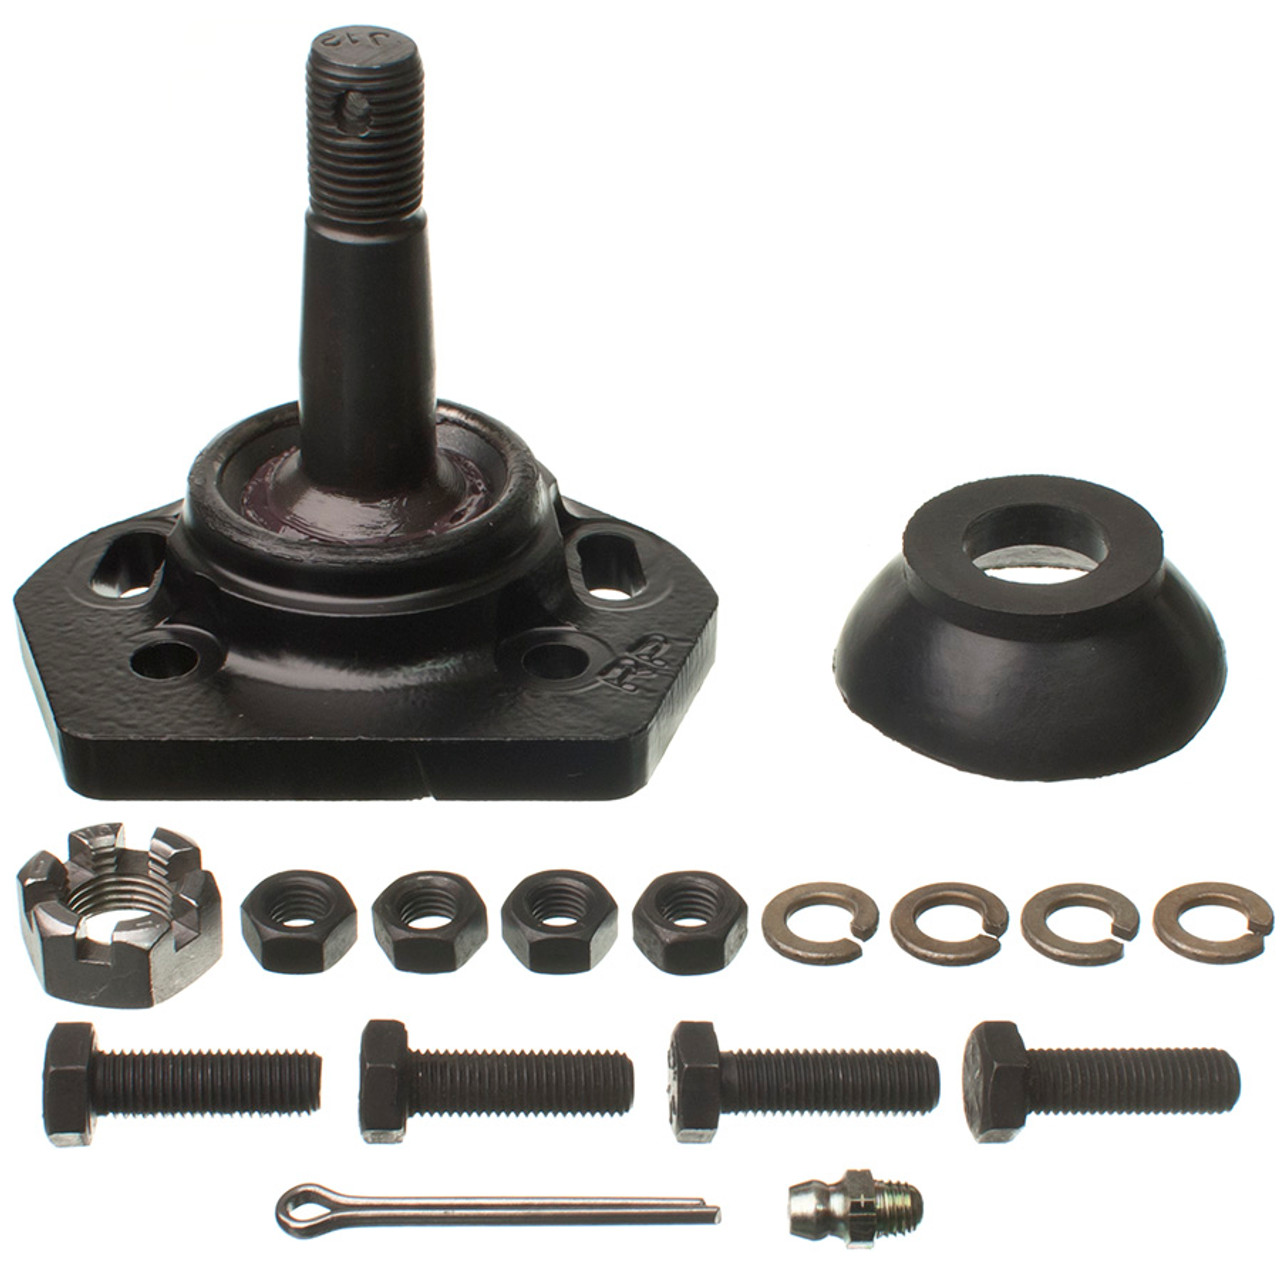 Details about  /For 1986-1992 Oldsmobile Toronado Ball Joint Front Lower 43967RK 1987 1988 1989